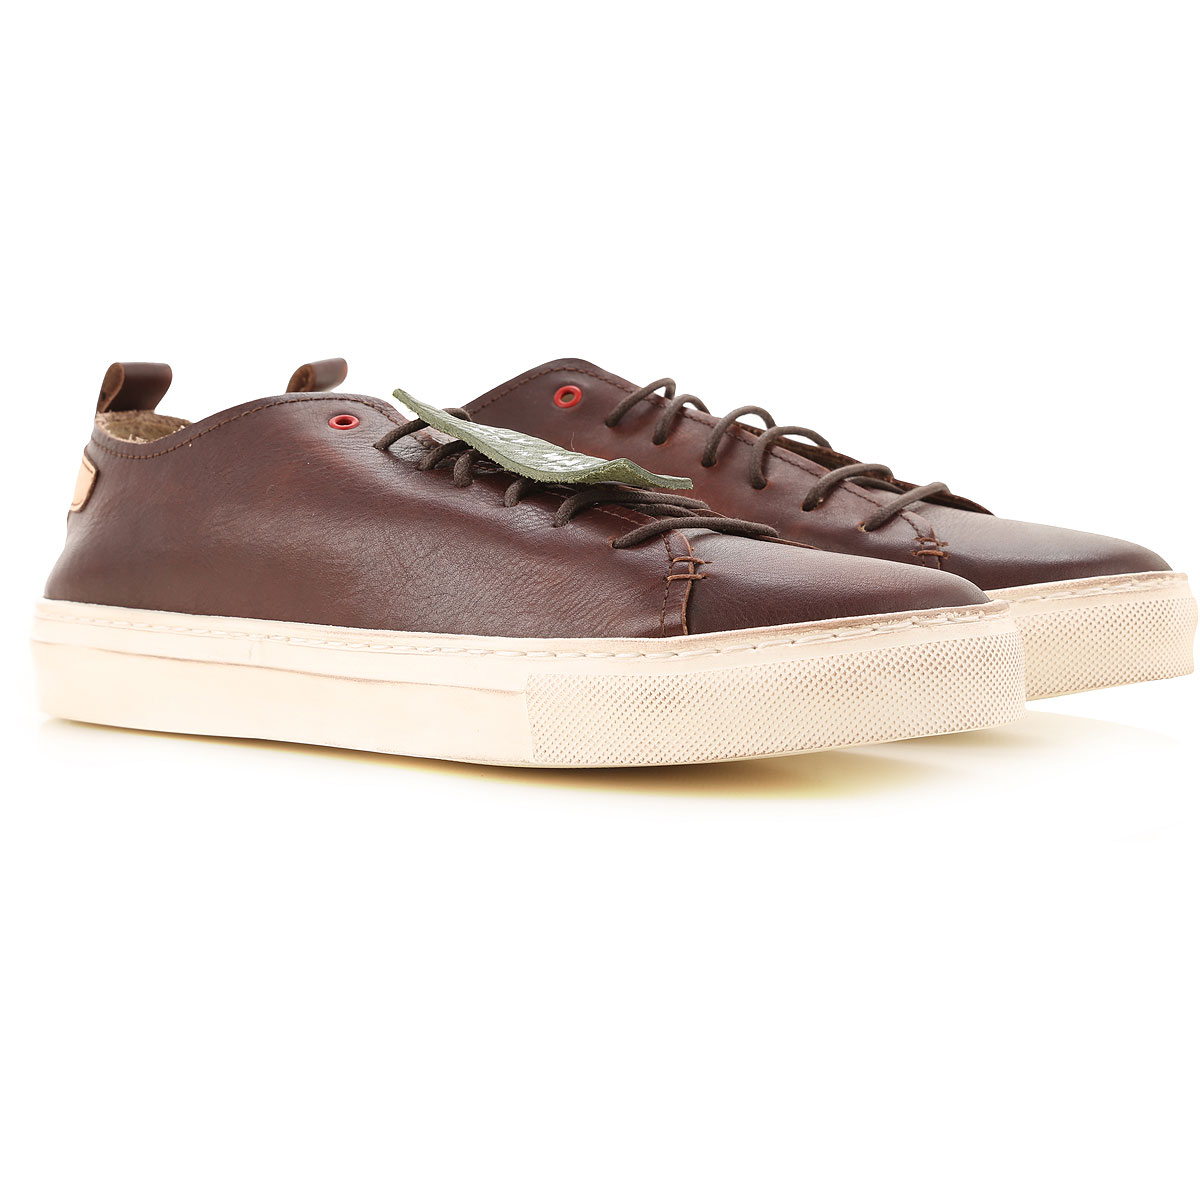 Wally Walker Sneakers for Men On Sale, Bordeaux Brown, Leather, 2019, 10 7.5 8